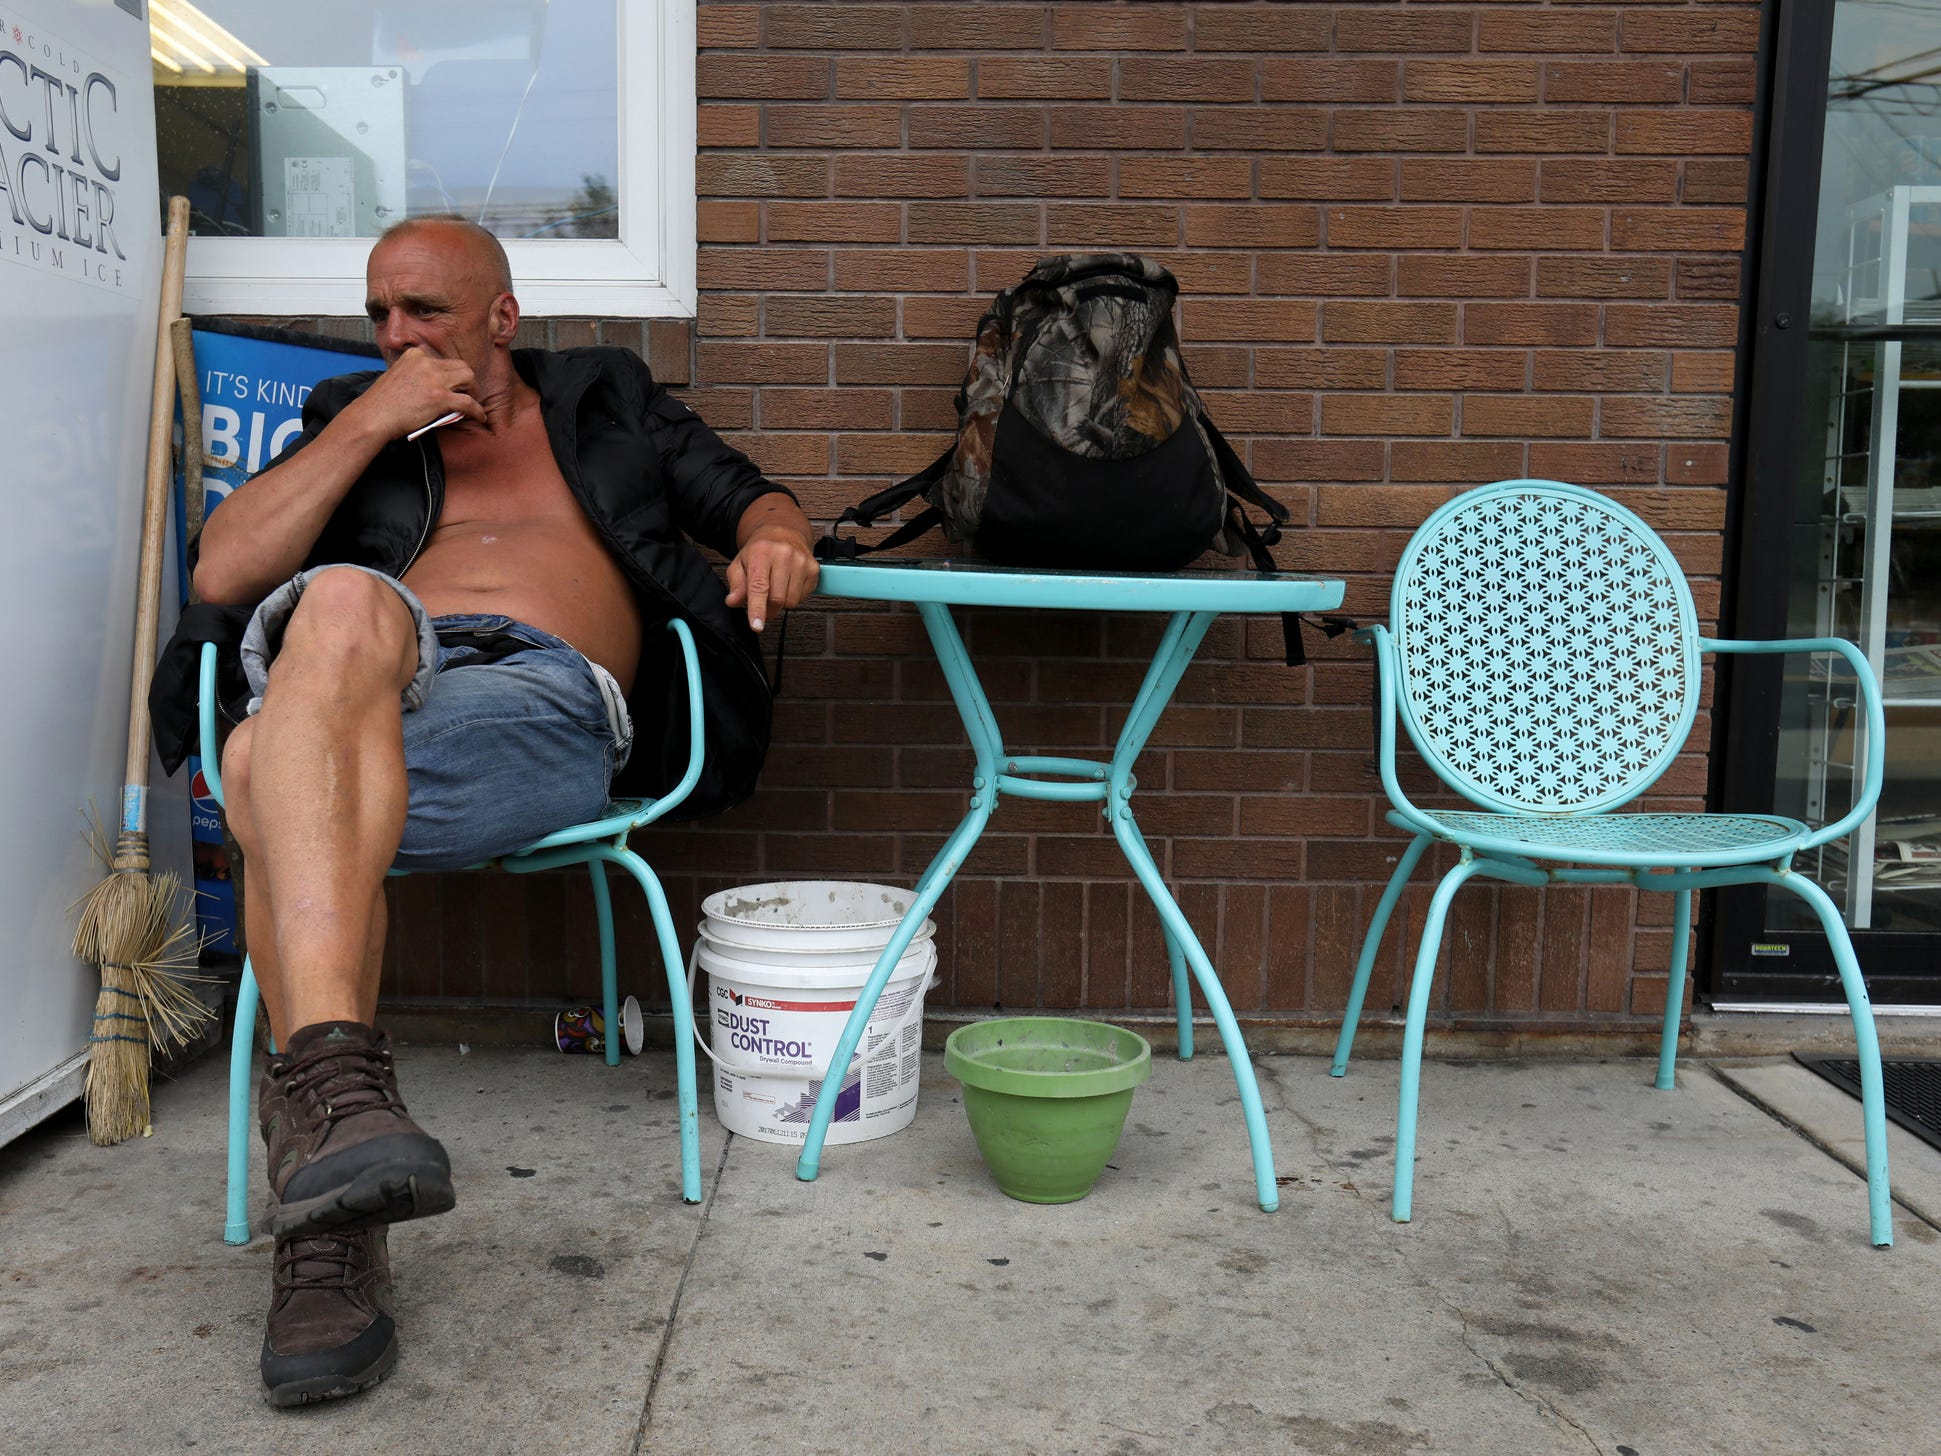 Joe Murphy cleans his teeth with a straw while relaxing at Luby's Food Store in Kenora, Ontario, Canada. Luby's, a convenience store is one of the places Murphy likes to hang out at.